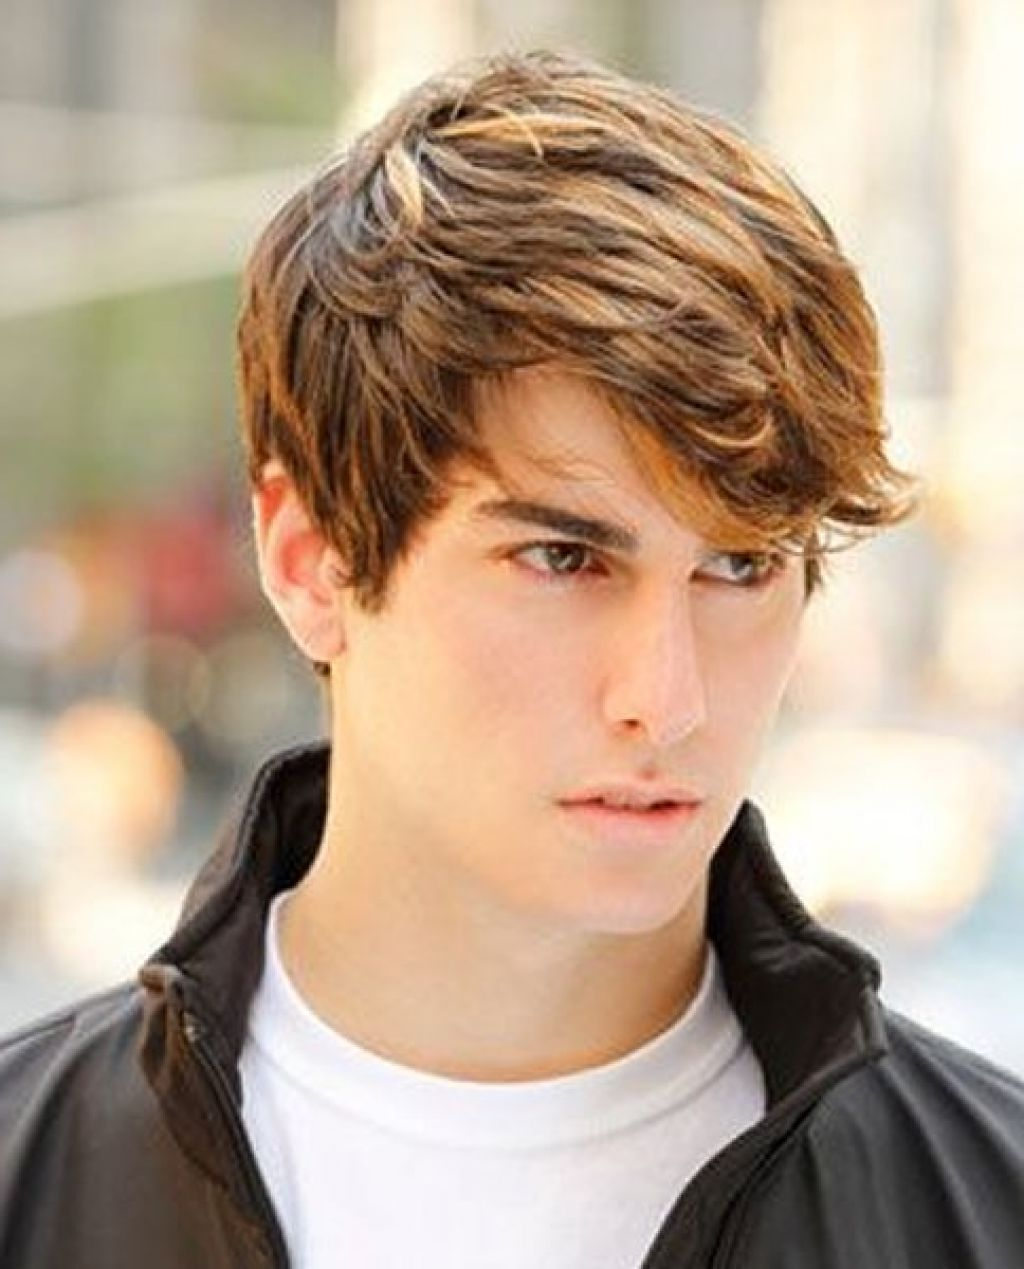 image result for trendy boy haircuts | hair in 2019 | boys